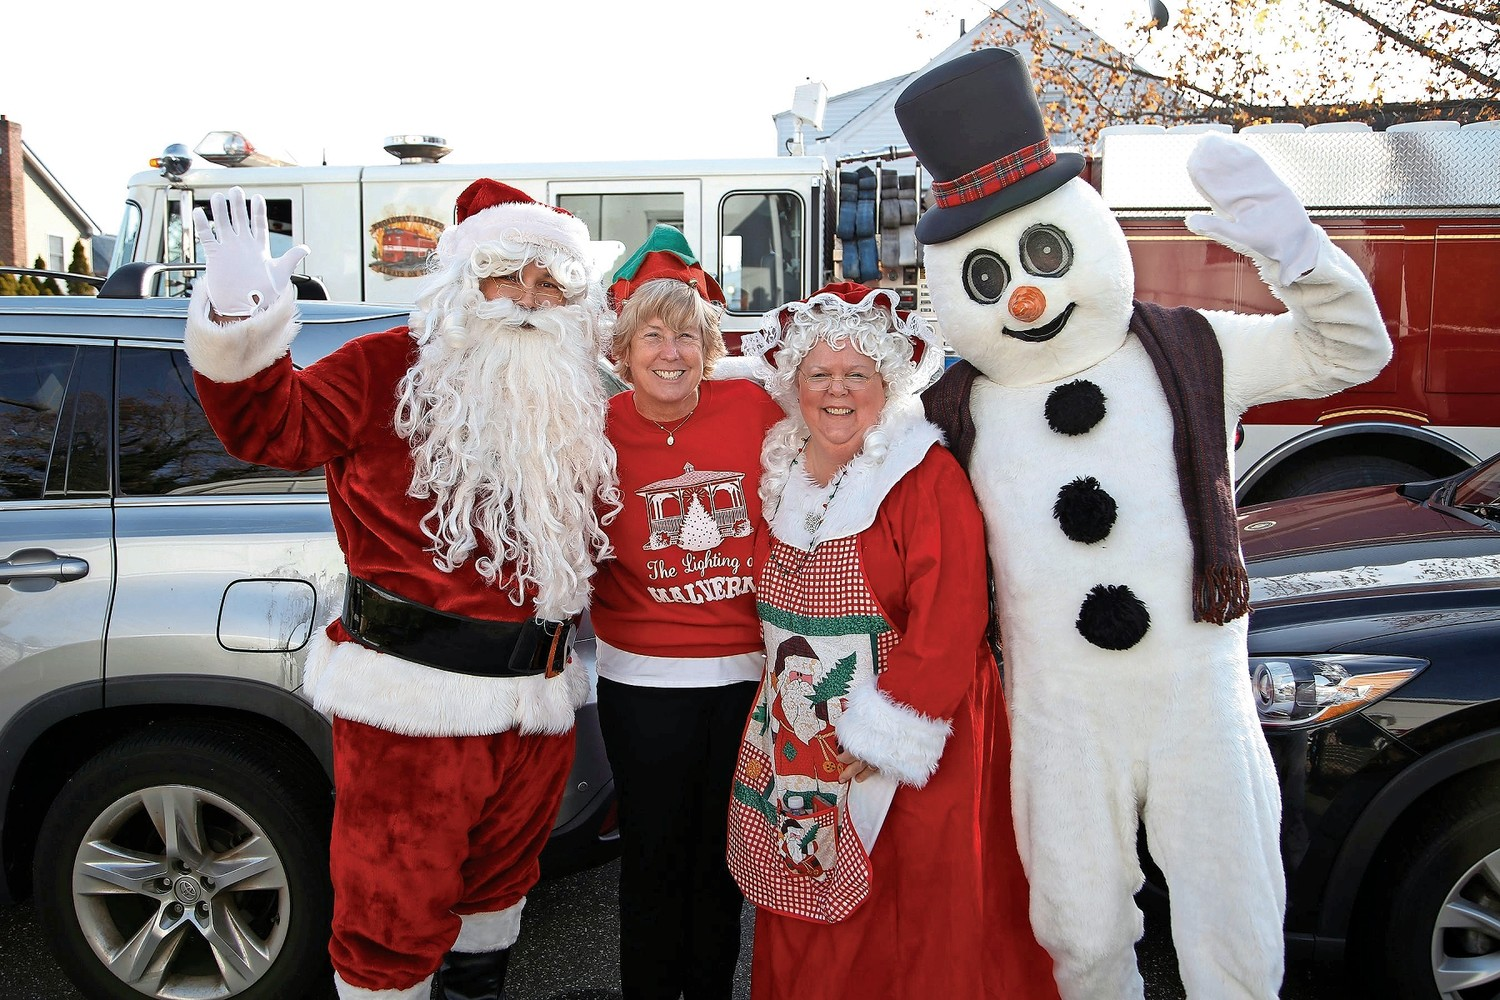 Mayor Patti McDonald met Frosty the Snowman and Mr. and Mrs. Claus.